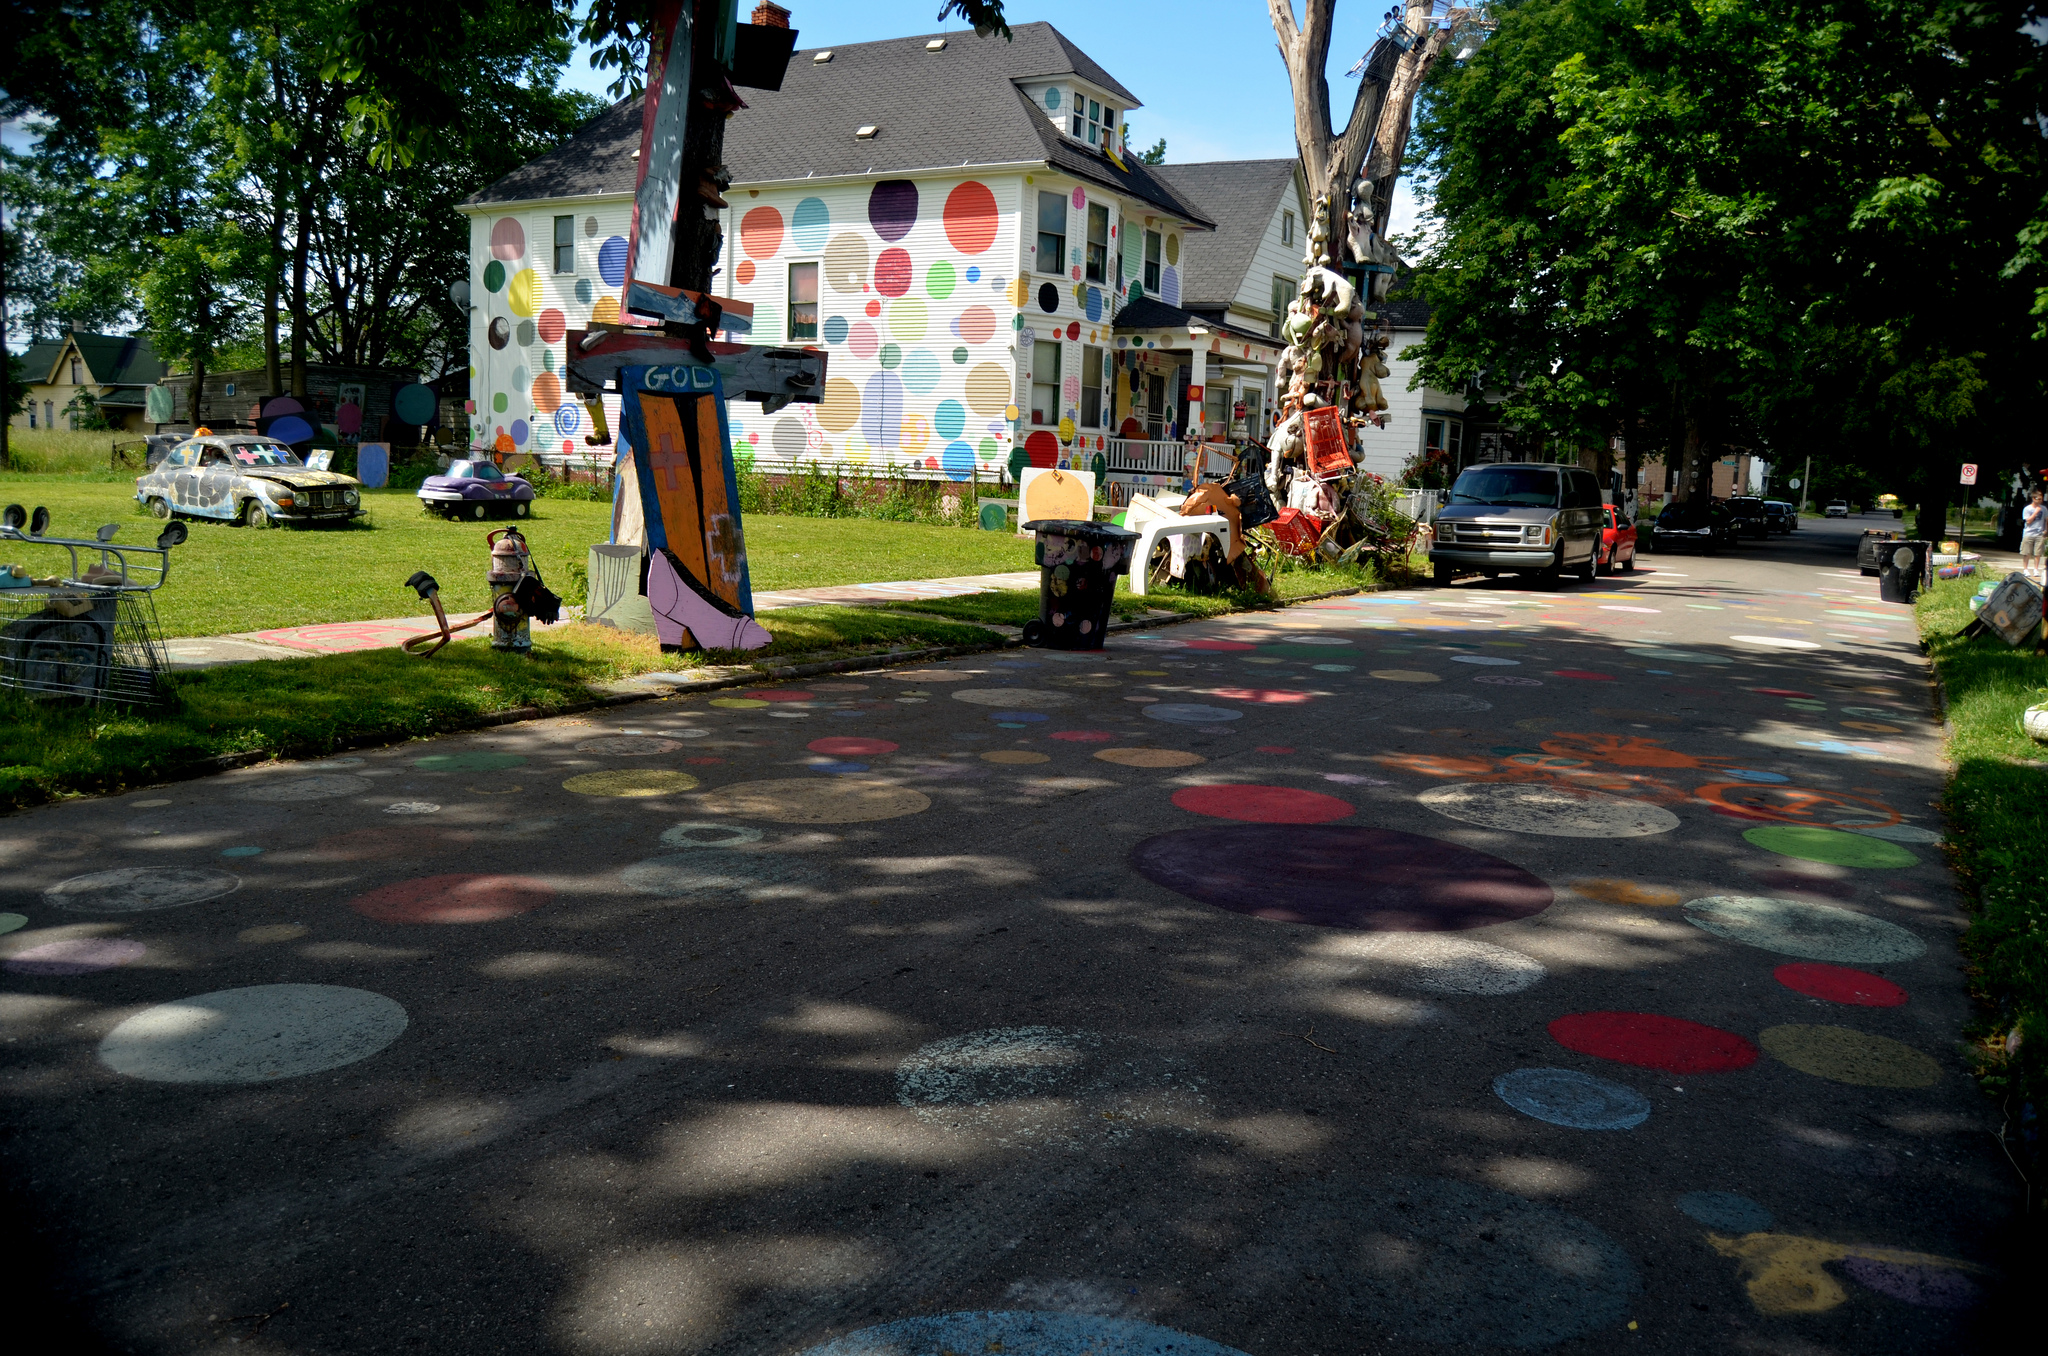 """""""Heidelberg Project"""" by Nic Redhead is licensed under CC 2.0."""